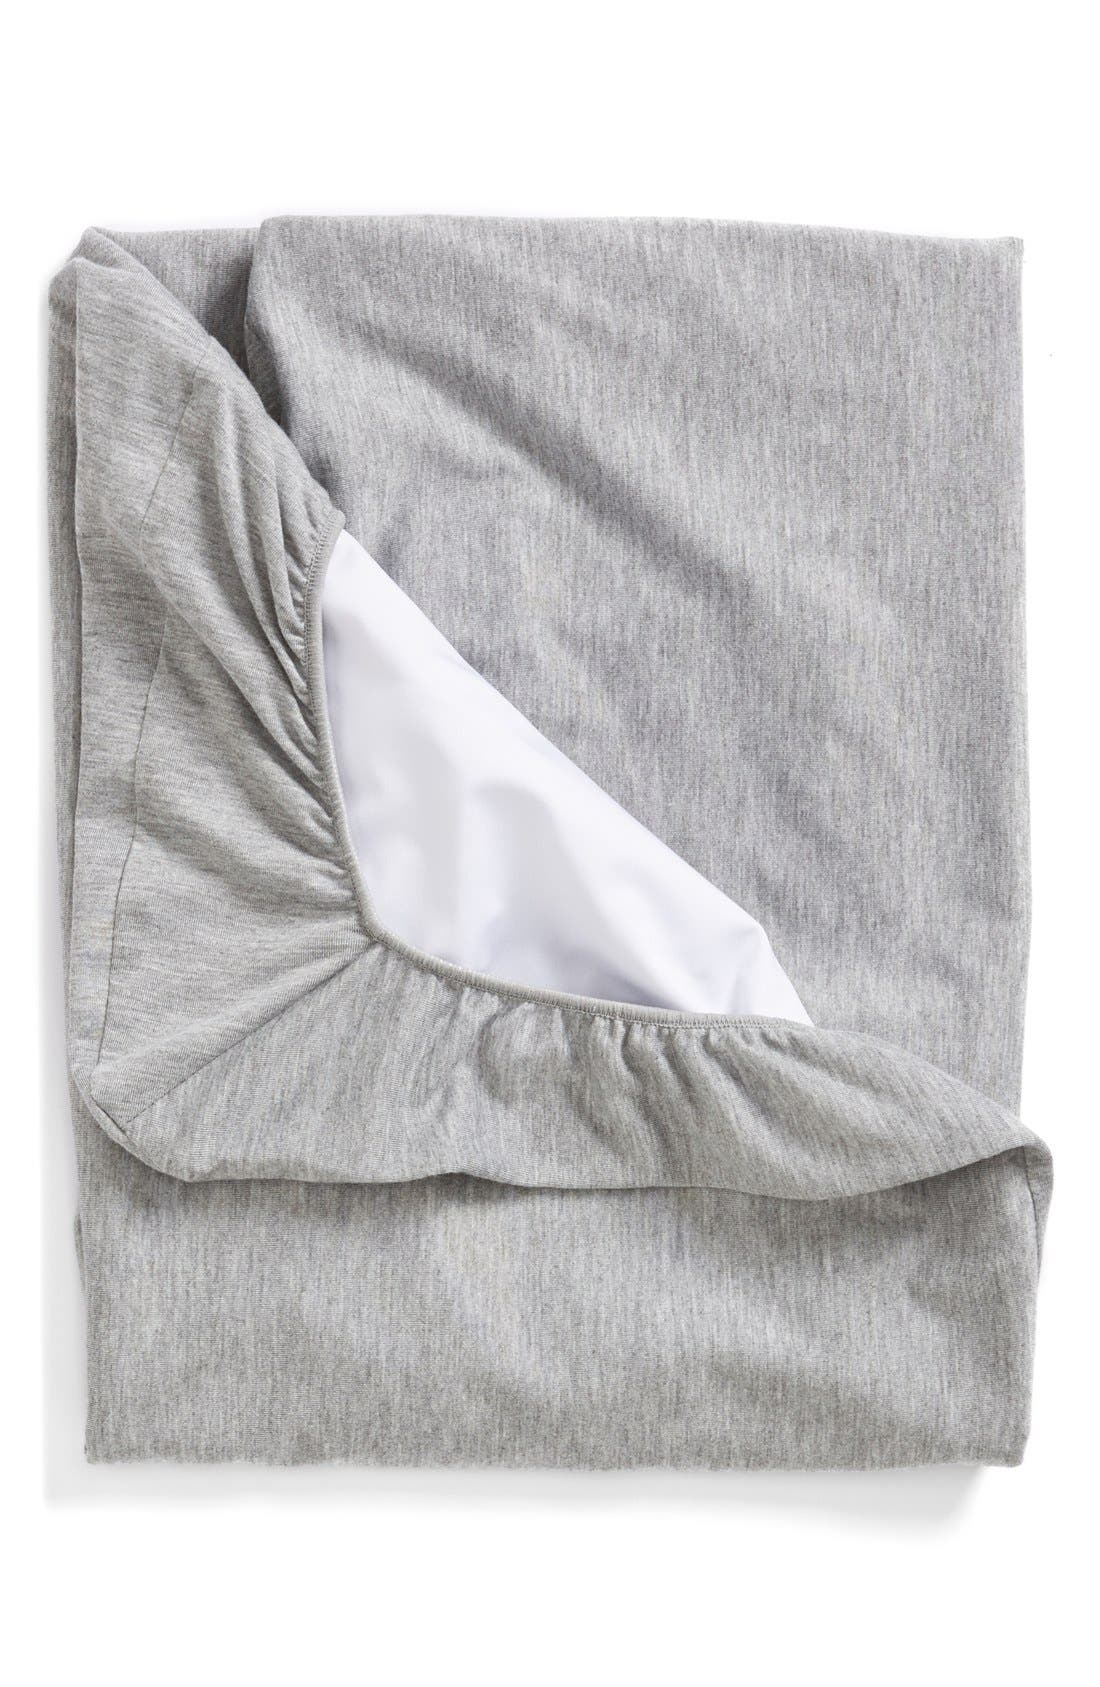 'SENA<sup>™</sup> mini' Waterproof Fitted Sheet,                             Alternate thumbnail 2, color,                             Grey